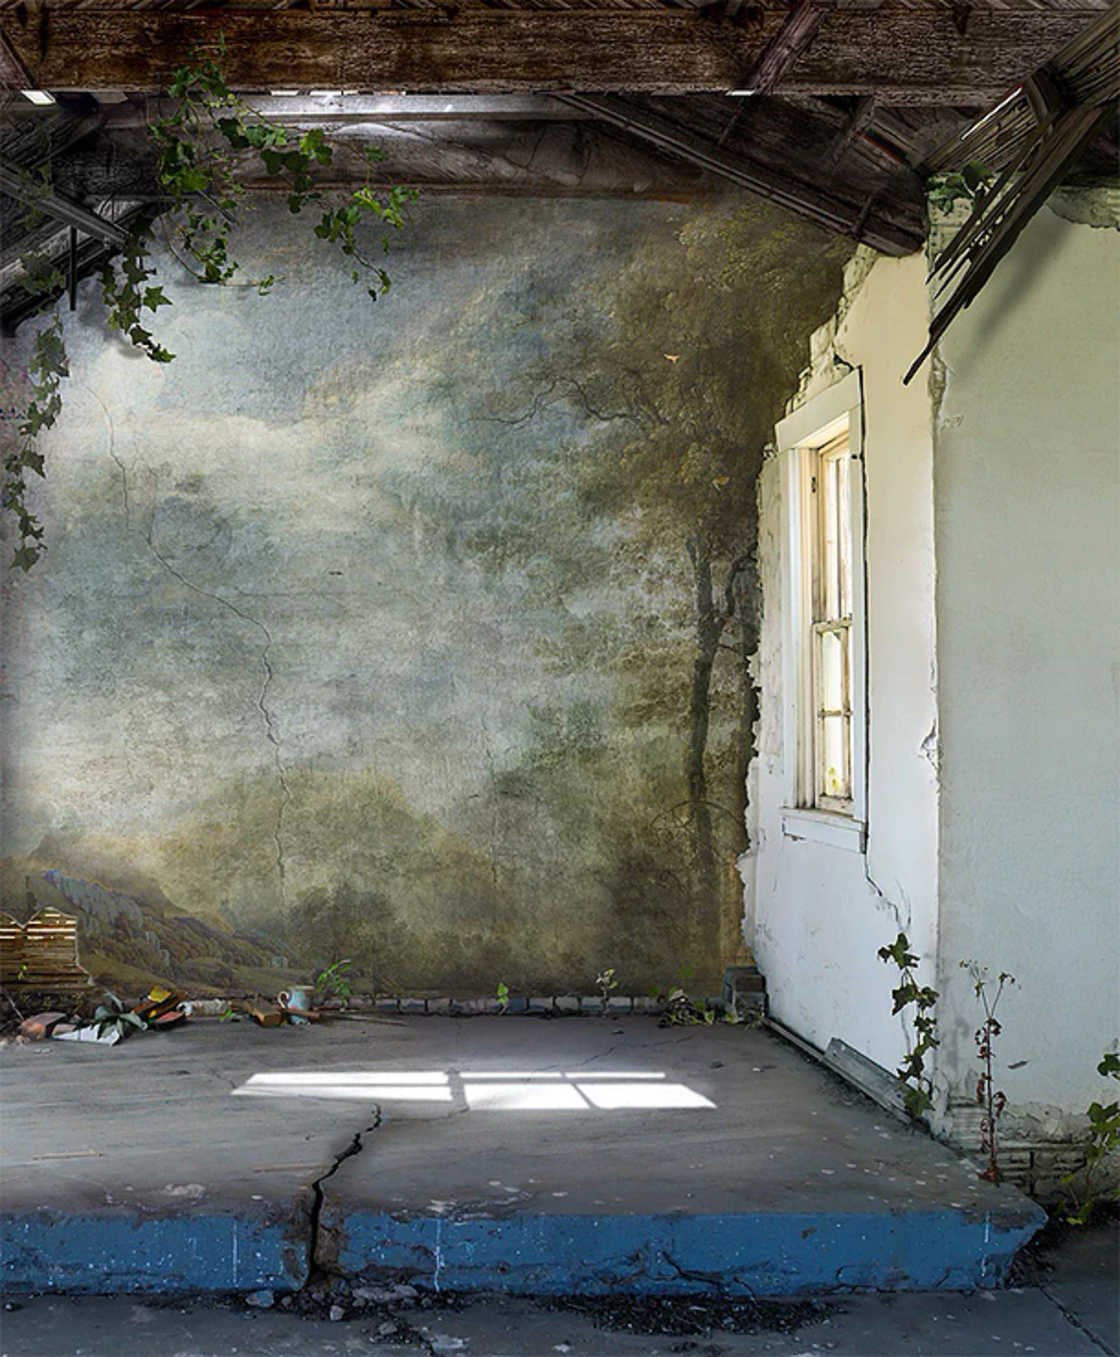 Nature Interiors - When nature invades abandoned places